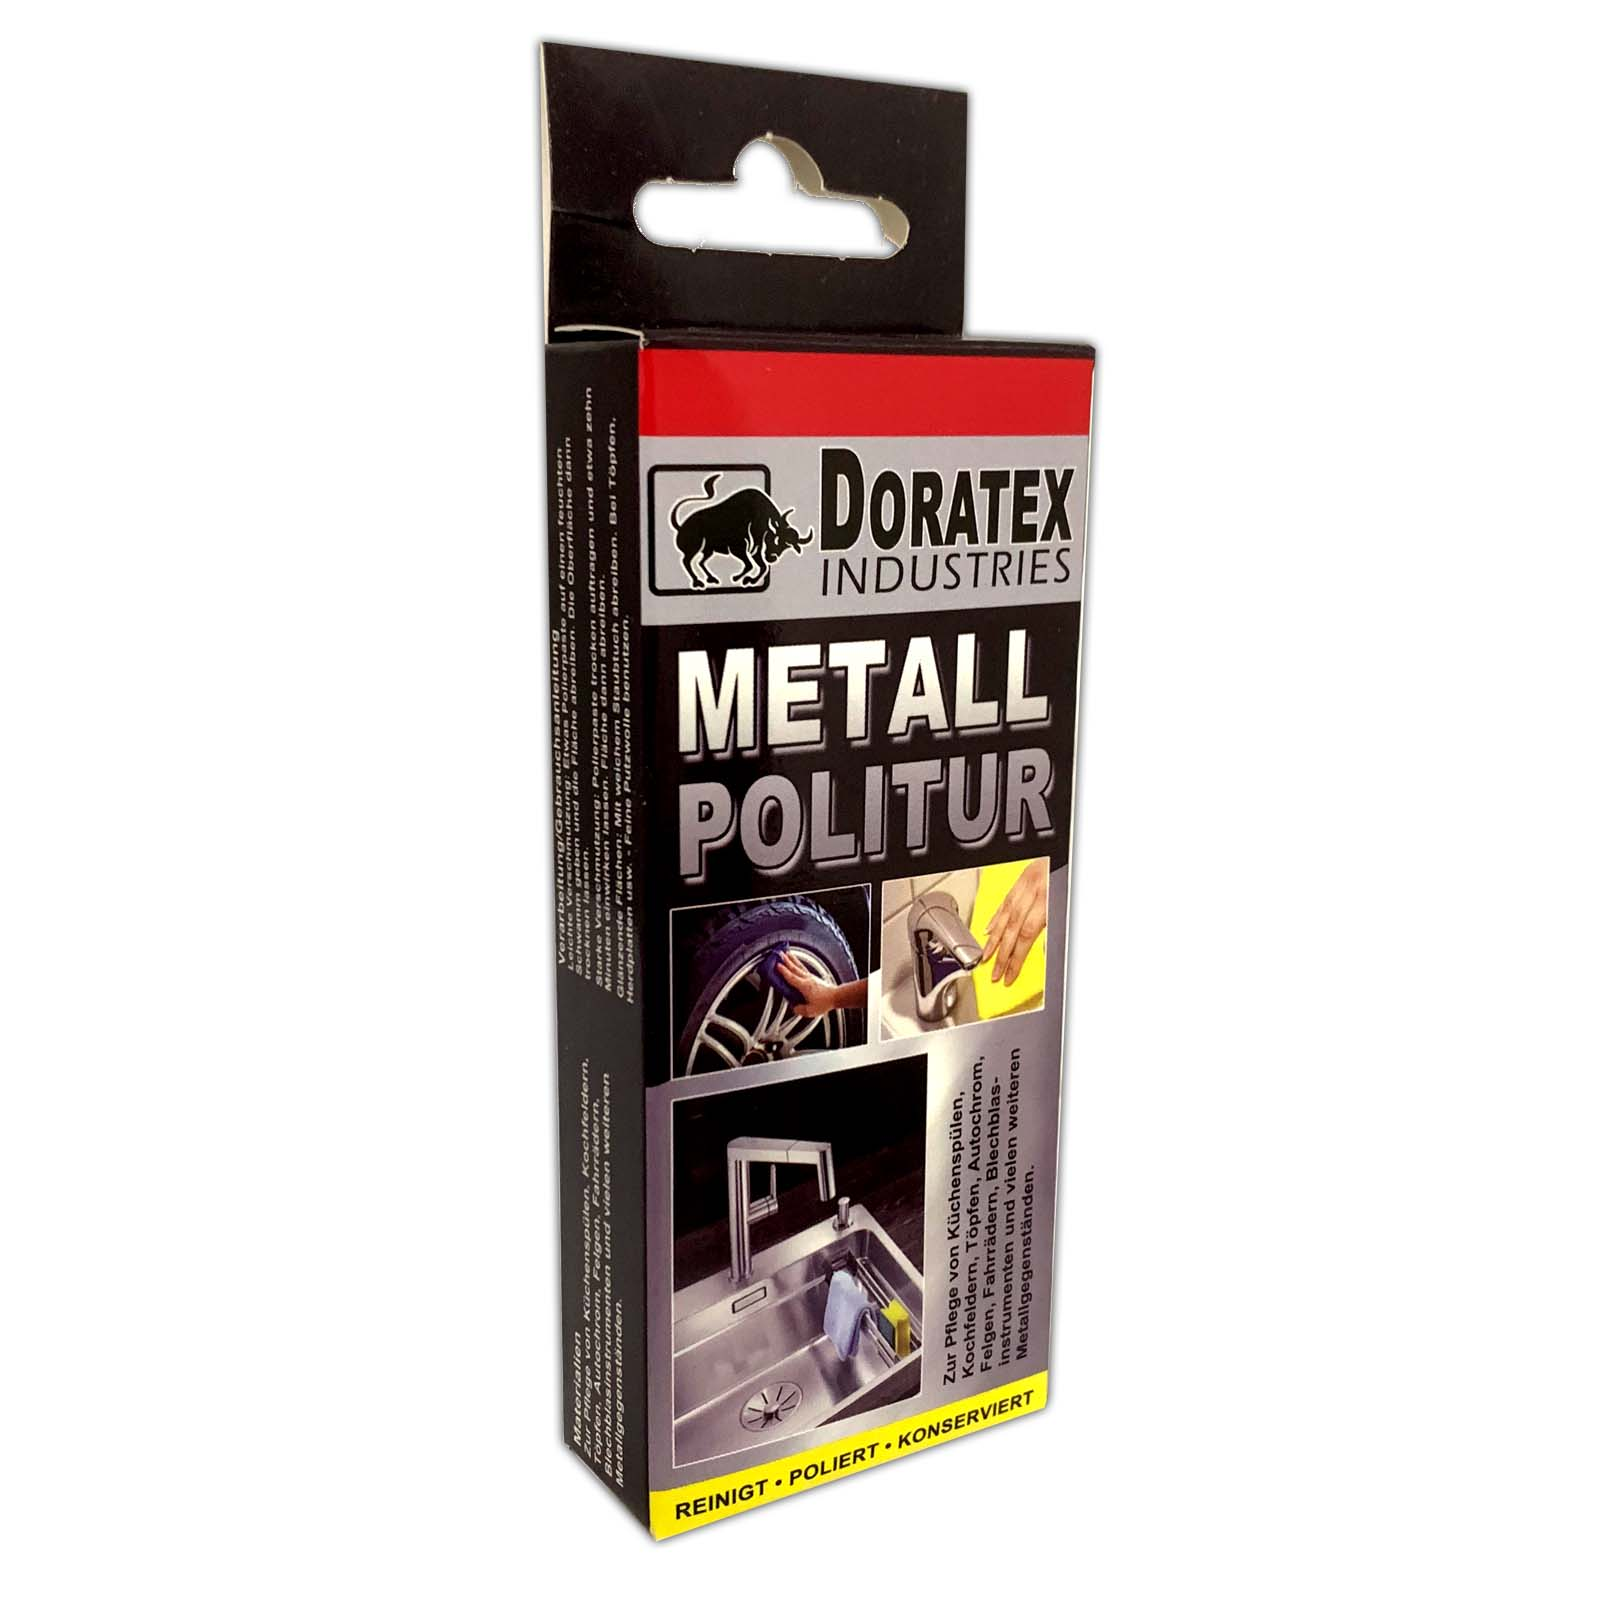 Doratex Industries Metall Politur | Polierpaste Chromglanz 10g | Metallpolitur